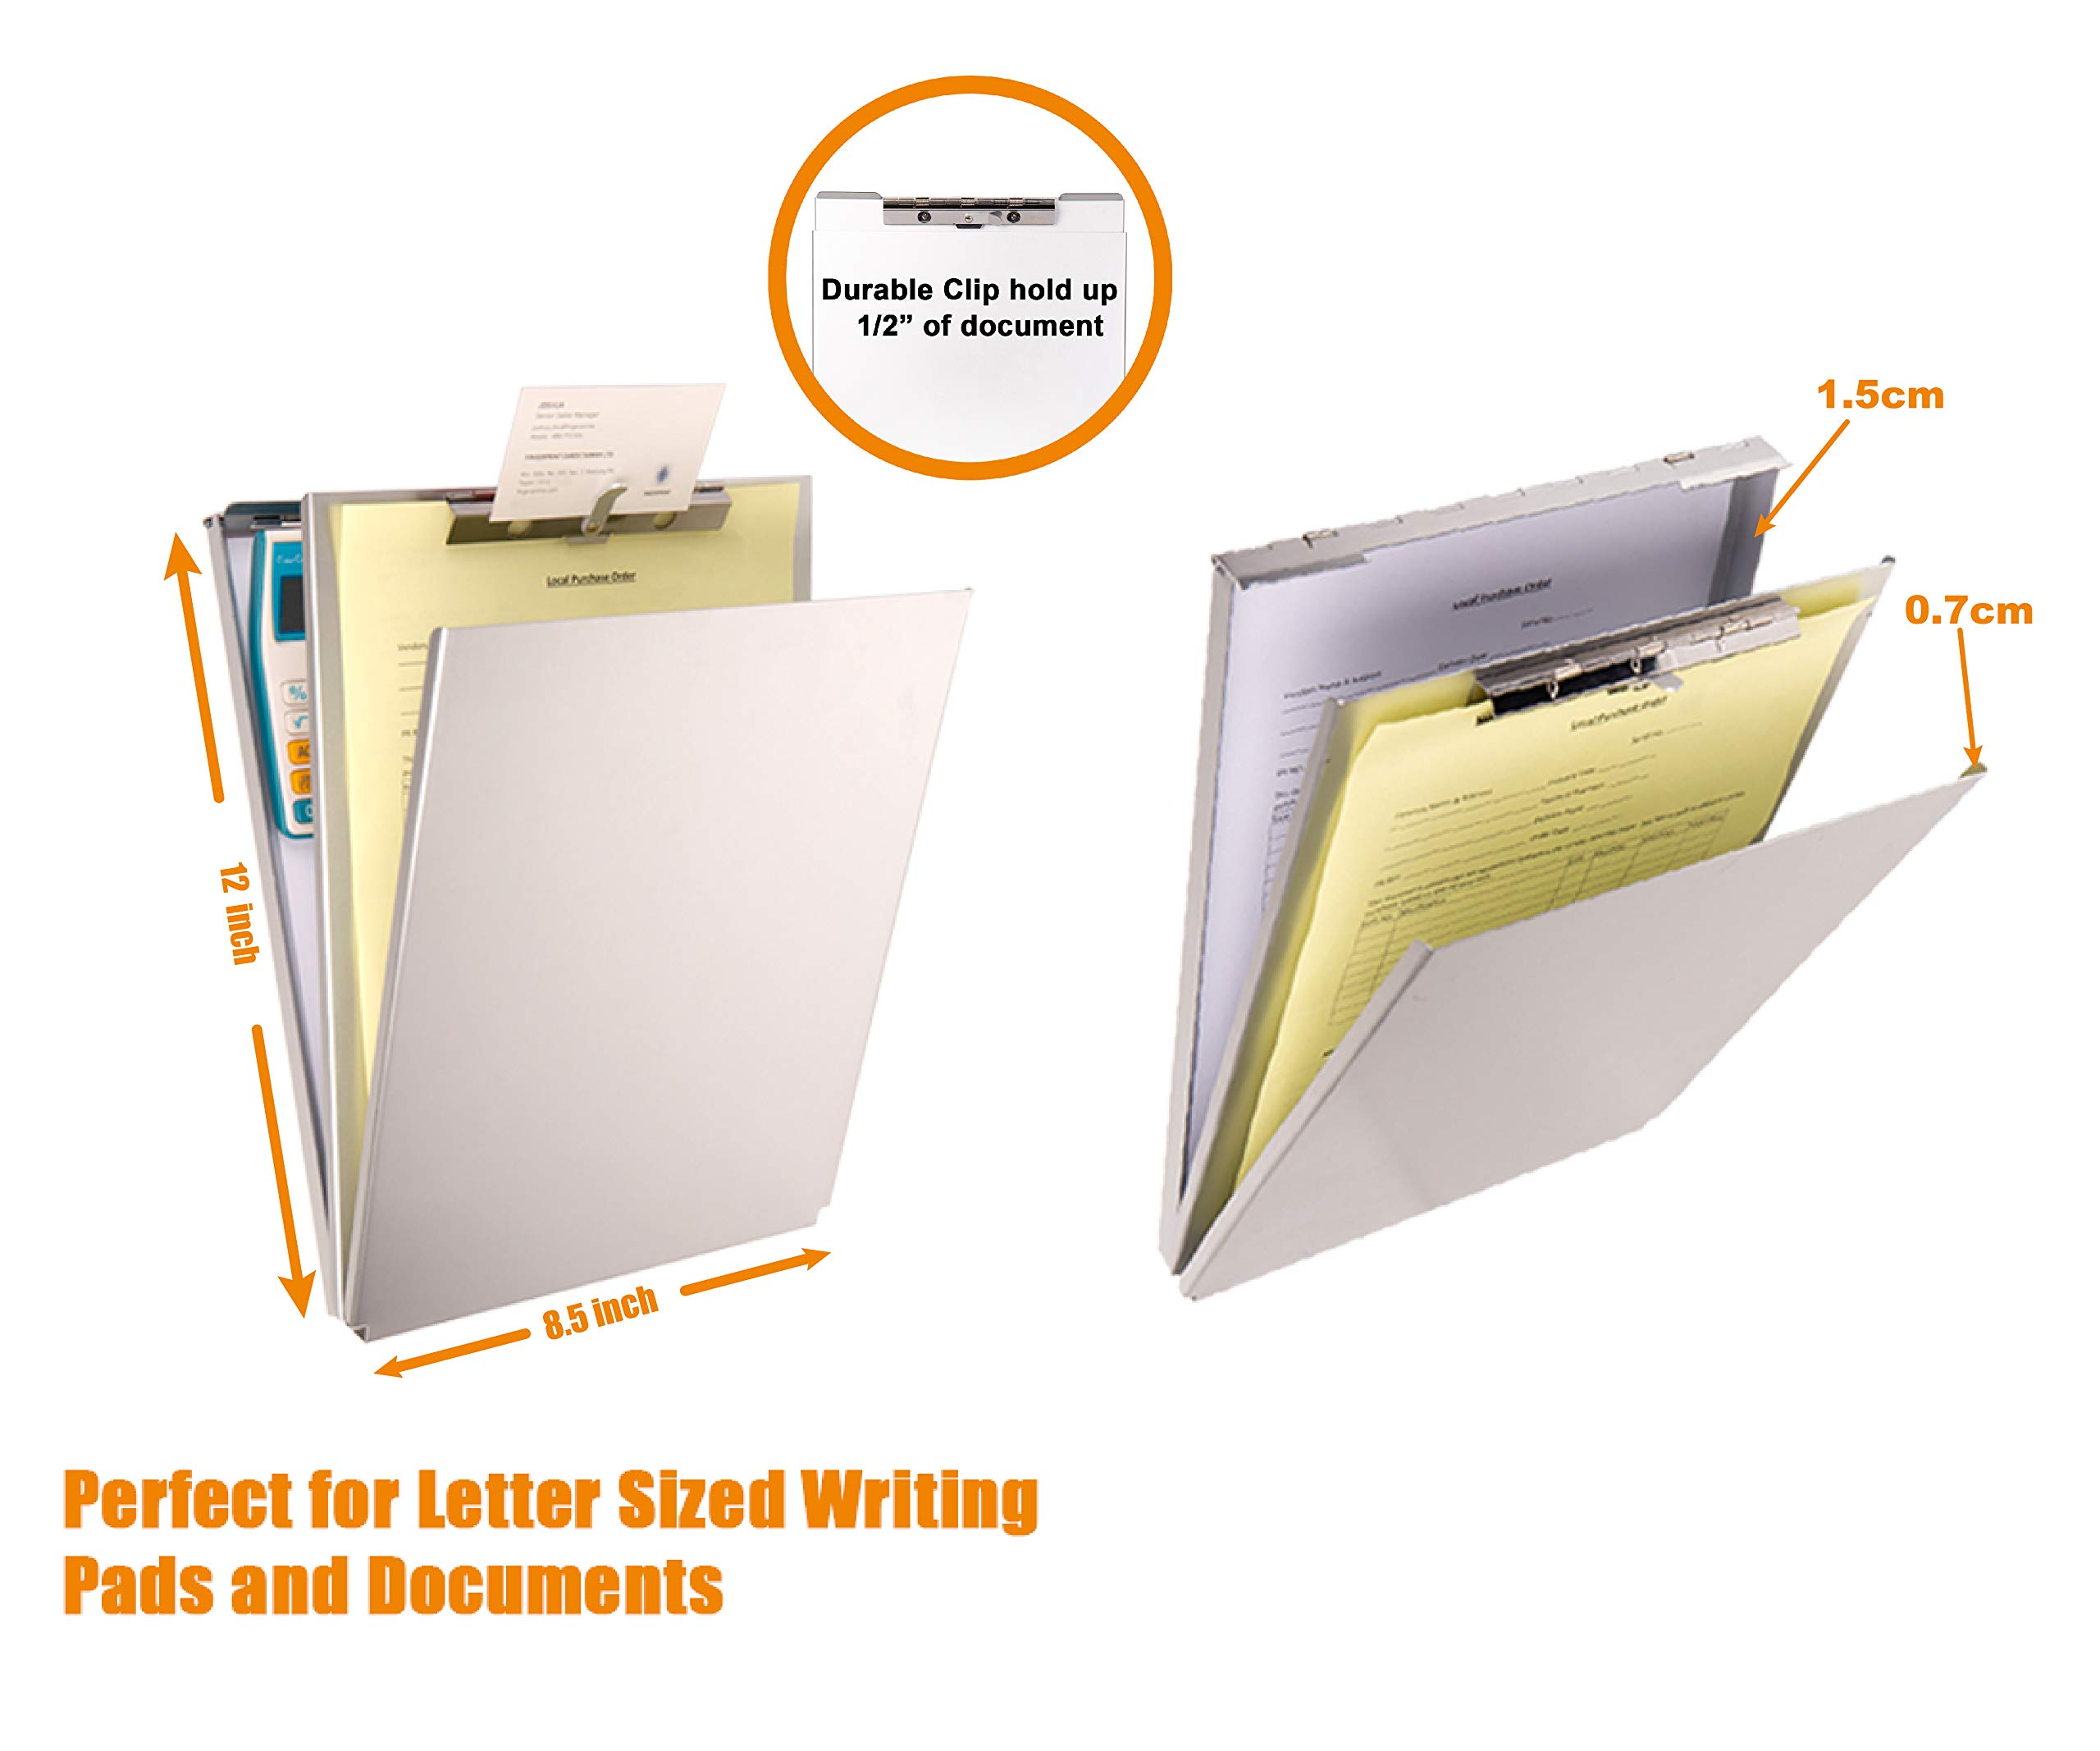 Summit Tools Dual Storage Aluminum Clipboard - 8.5 in. x 12 in. Letter Size Document Holder with Self Locking Latch, Form Clip, 2 Storage Compartment [2-Pack] by Summit Tools (Image #6)